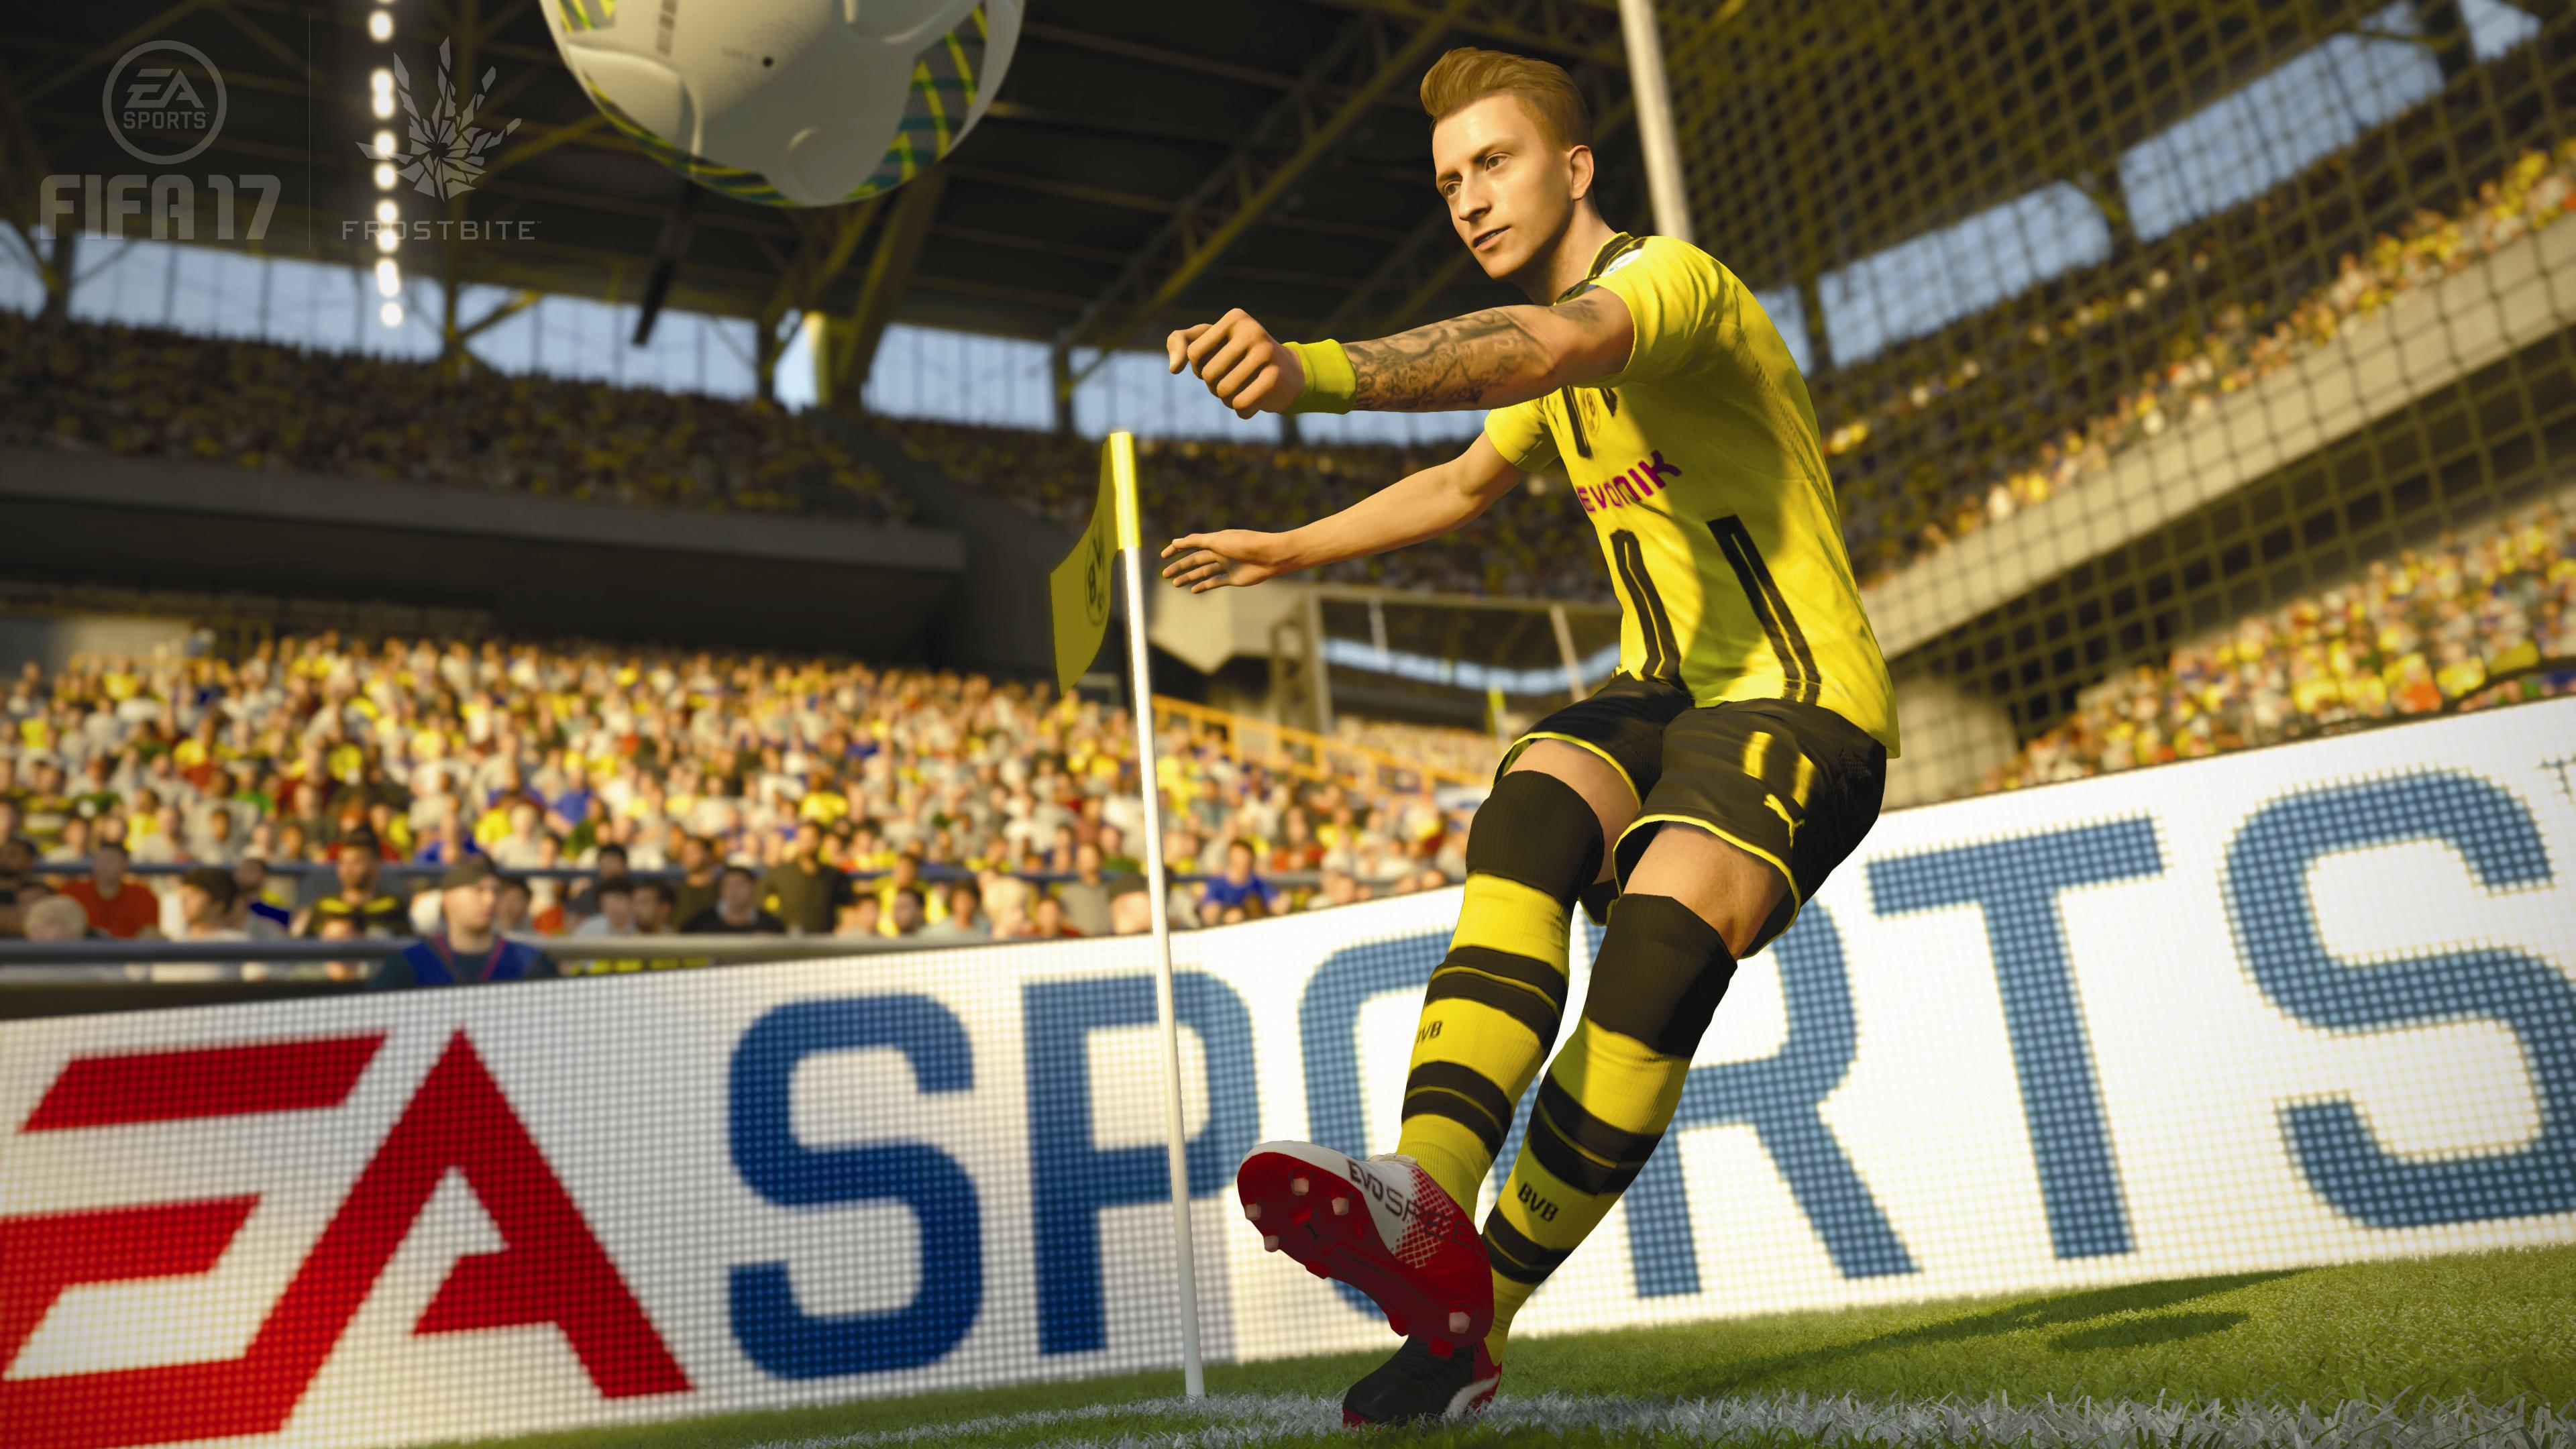 FIFA17 XB1 PS4 Reus Corner HR WM JPG jpgcopy Heres What We Thought About FIFA 17